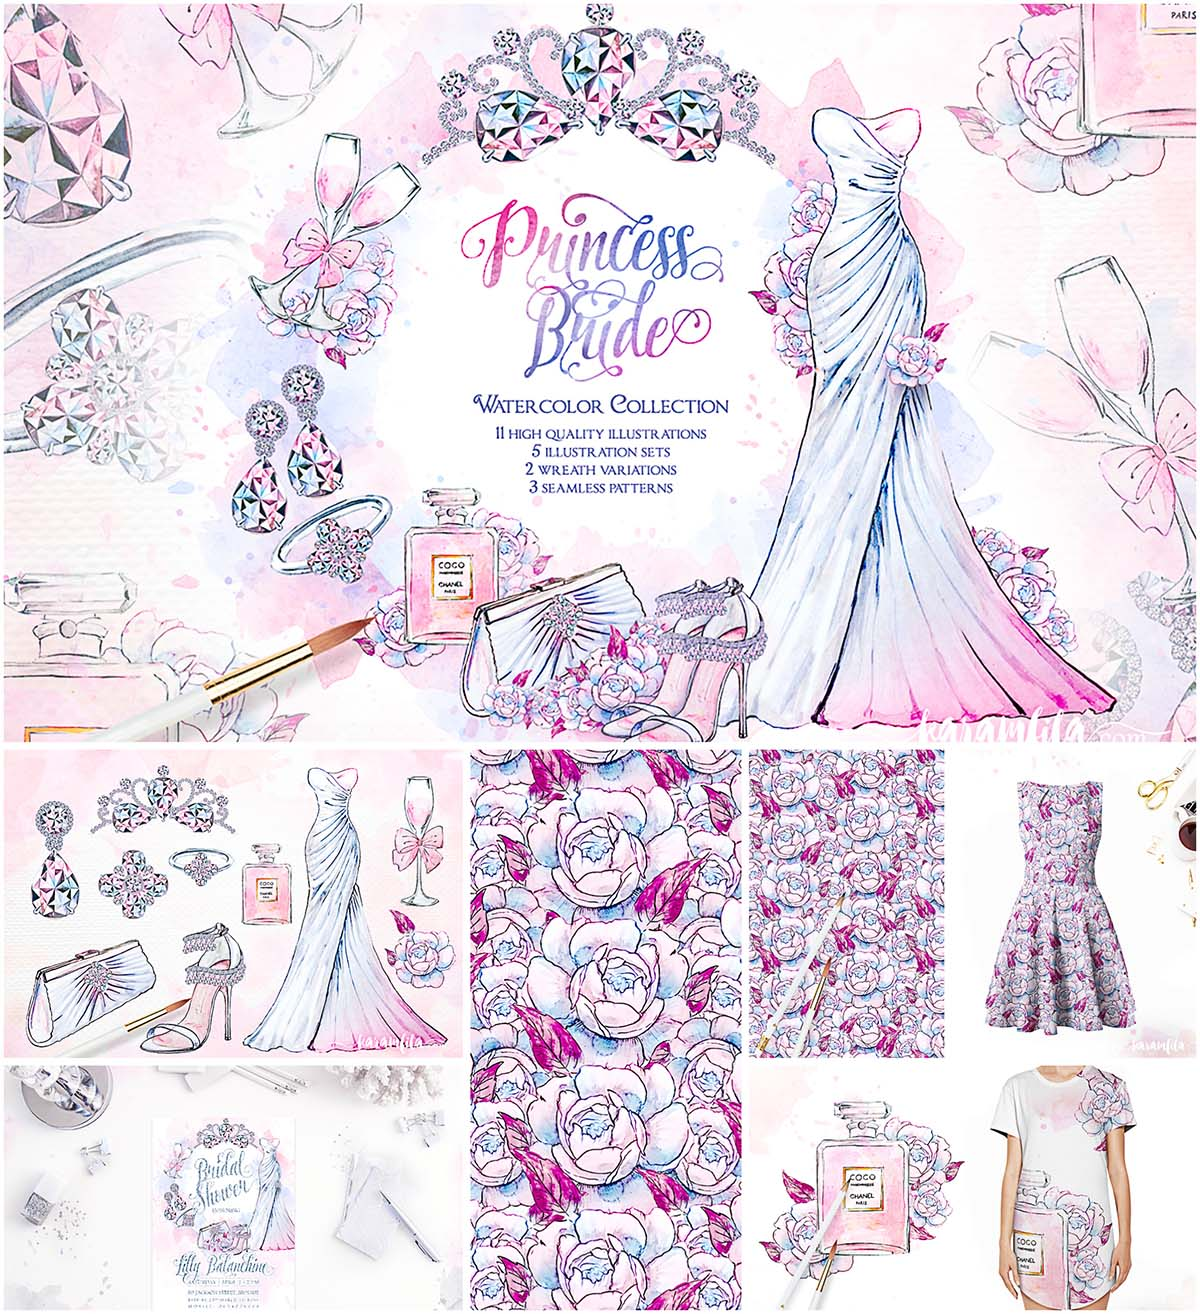 Princess Bride wedding illustrations set